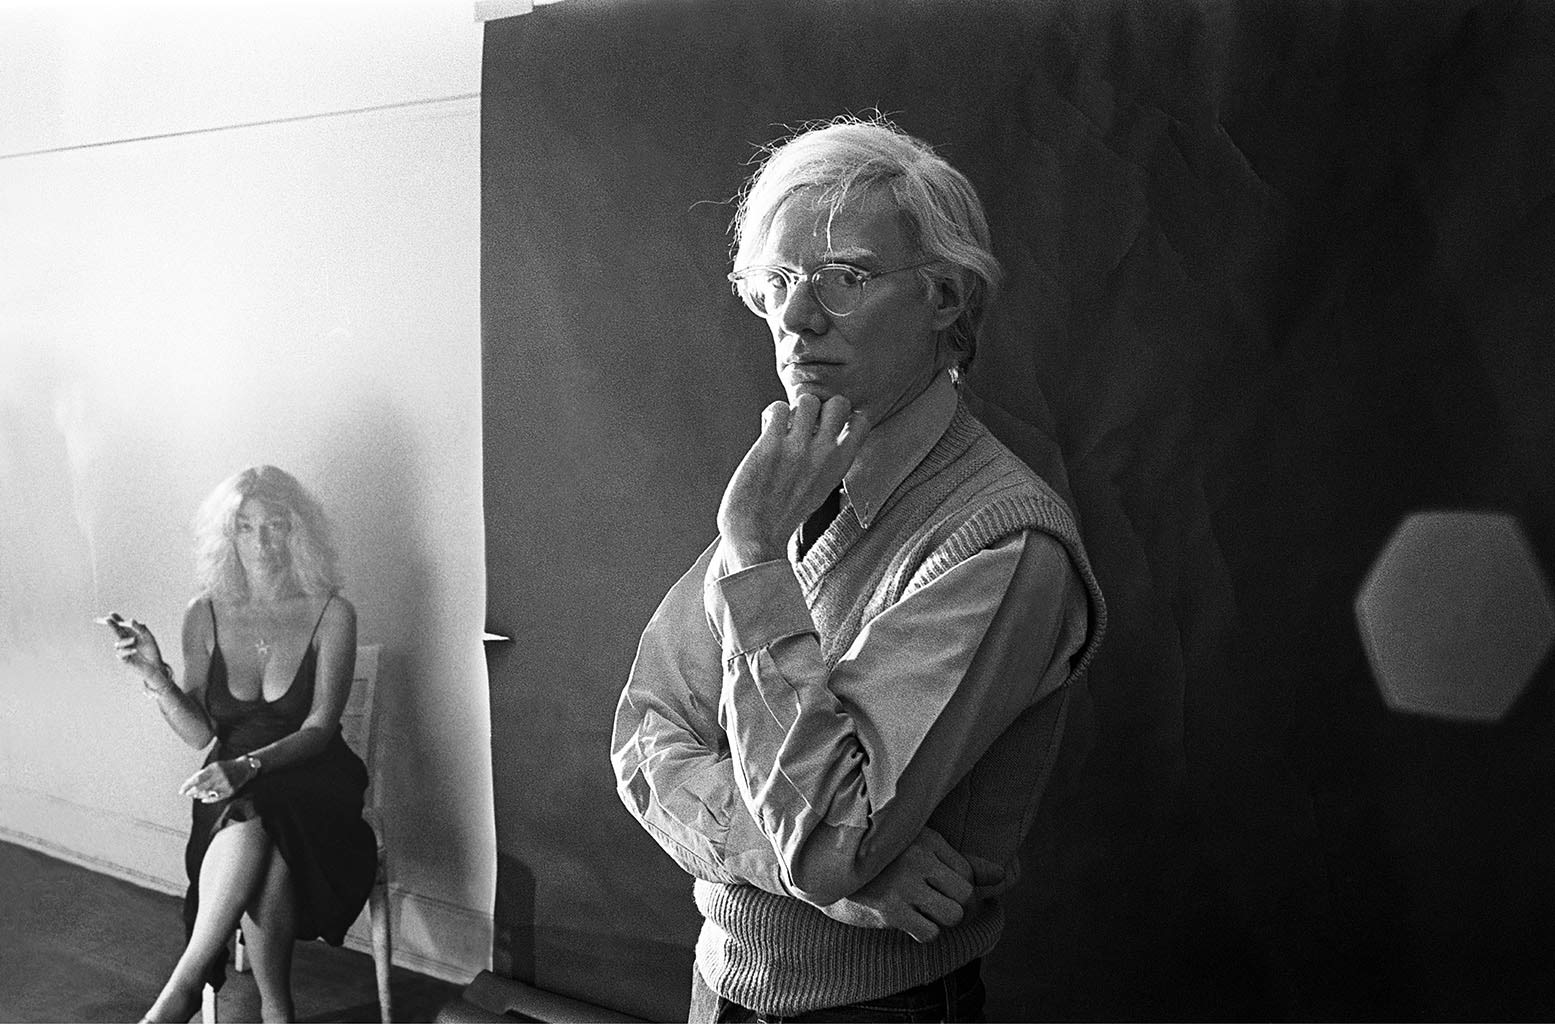 https://i1.wp.com/filtermanagement.com/wp-content/uploads/2014/05/Andy-Warhol-Sylvia-Miles.jpg